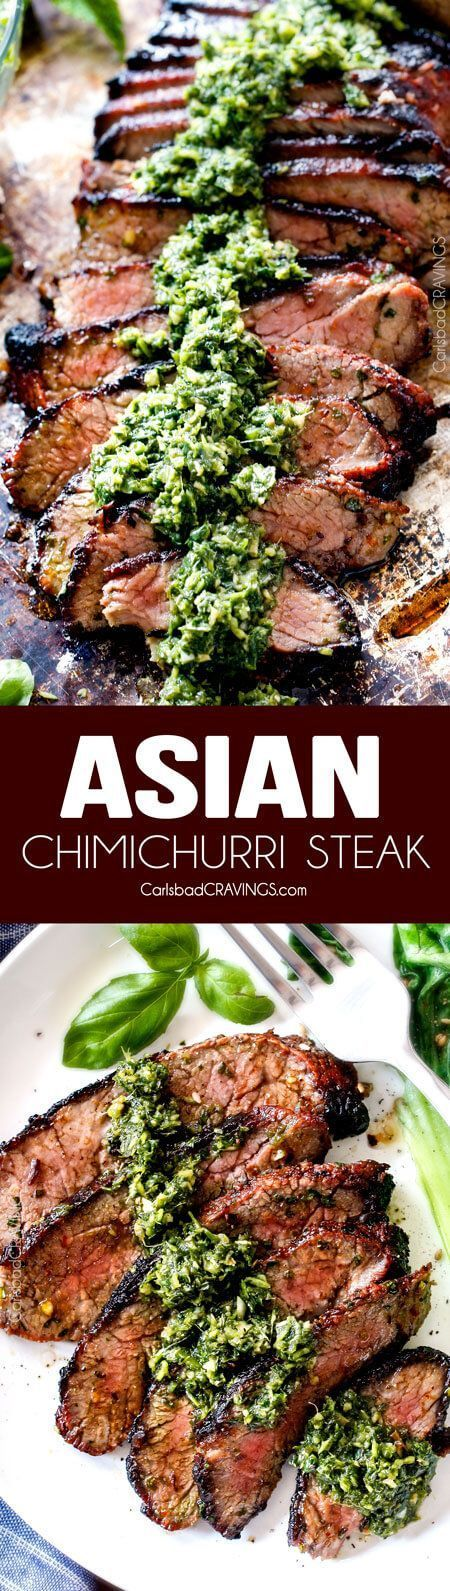 Grilled Asian Steak with Cilantro Basil Chimichurri - this marinade is hands down the best steak marinade I have ever tried - SO flavorful for a crazy juicy, tender, amazing steak!